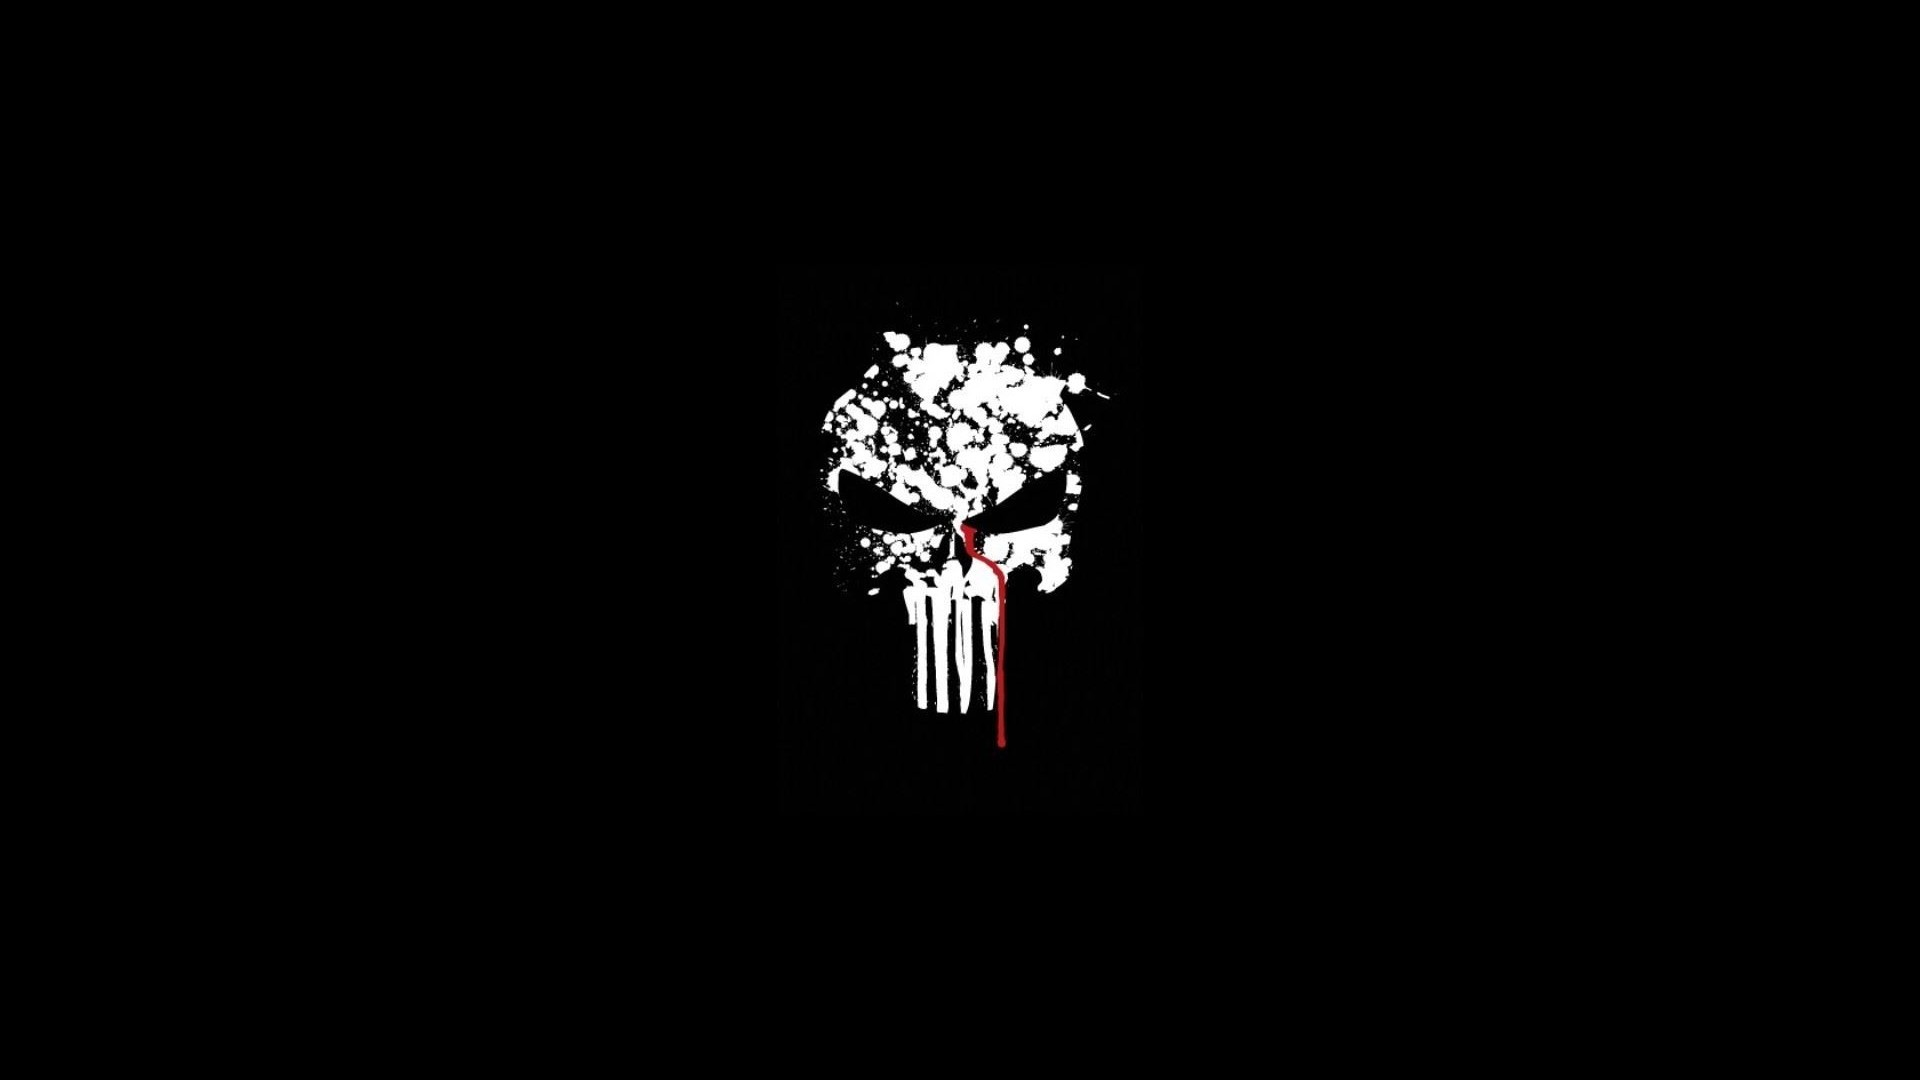 v Punisher Wallpapers, The Punisher Hd Wallpapers Backgrounds ...